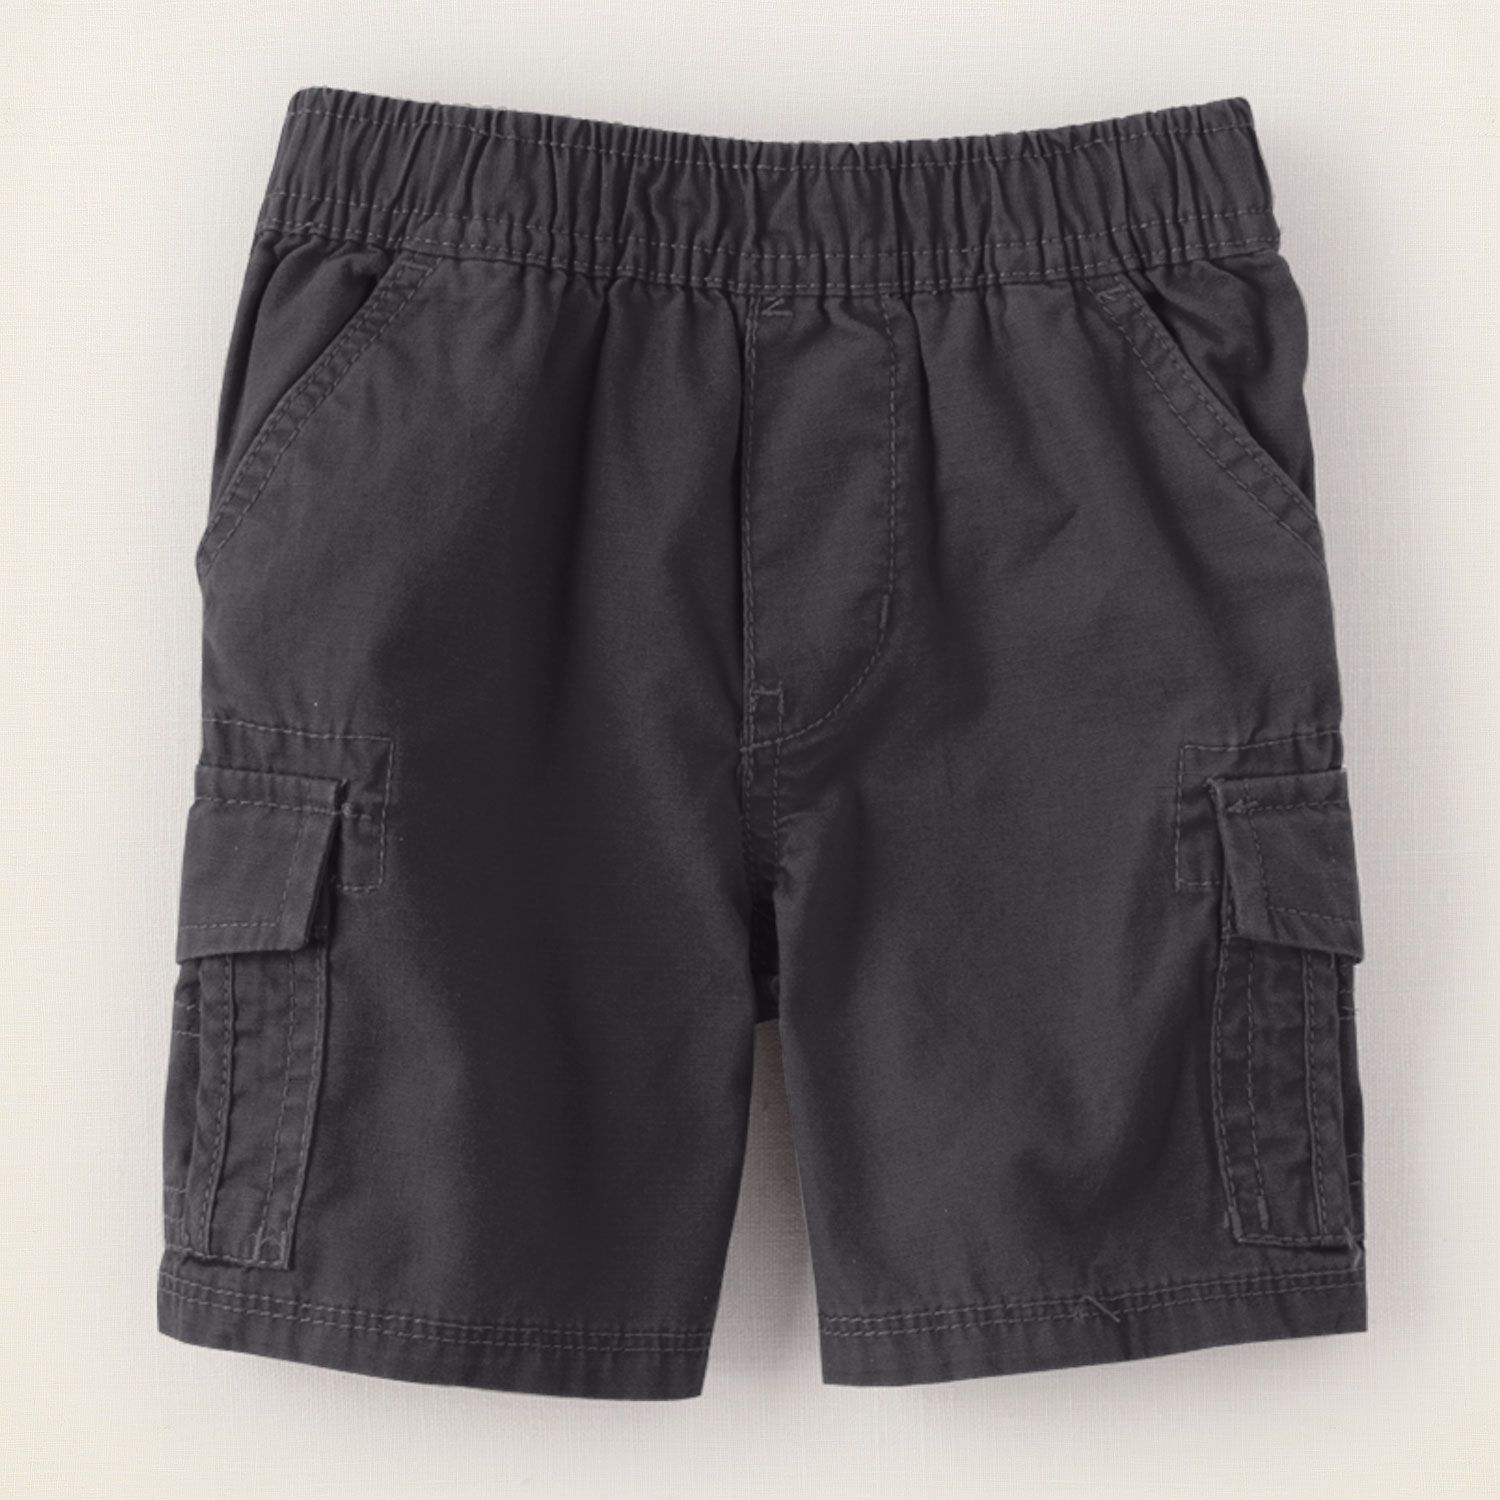 Pull-on cargo shorts $12.00| The Children's Place